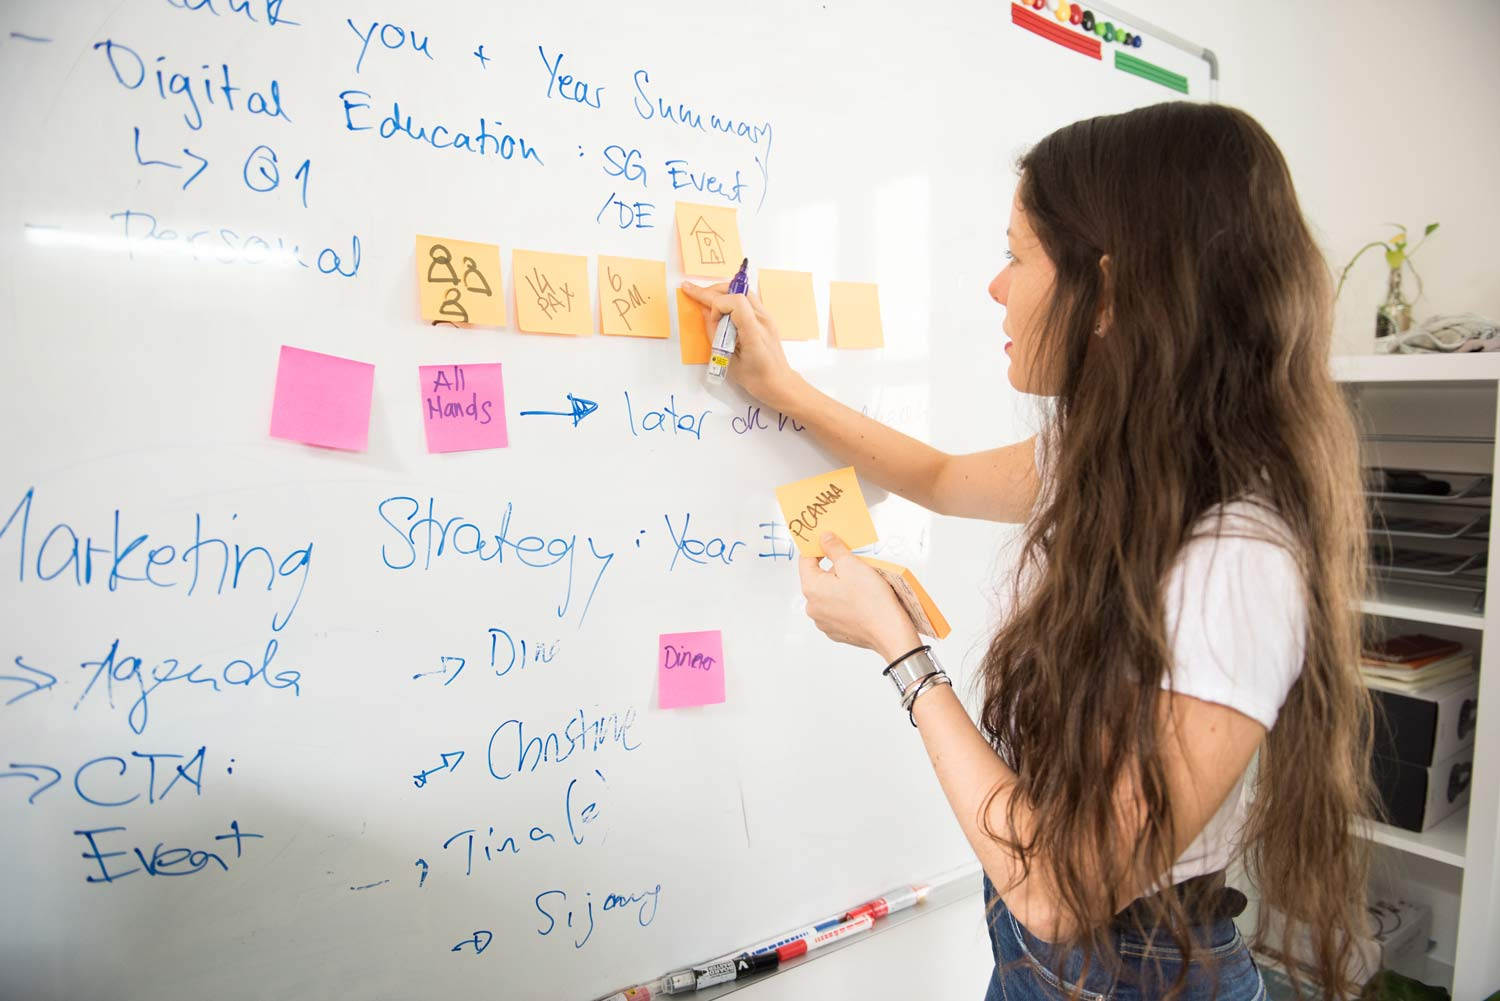 High Schooler leading a brainstorming session using a board, marker, and post-its.